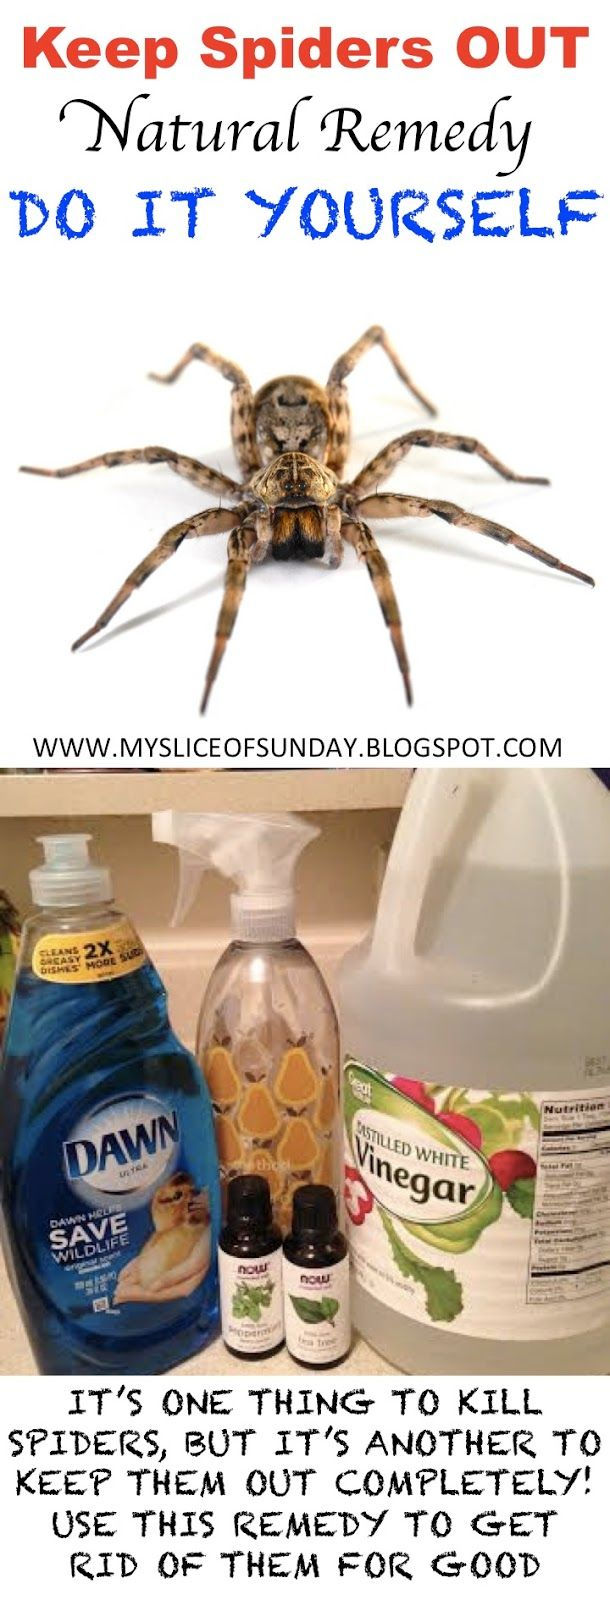 Keep Spiders Away ~ My Slice of Sunday- not only is this a good way to rid your home of spiders but it really works on wasp...i had a ton of nests in my yard...they are nearly all gone after using this spray. You dont really need the vinegar...2 cups of water..1 tsp of dawn detergent...1 tsp of peppermint oil....and they are gonners, make sure to wait until dusk...thats when they are the least likely to sting you and when they are tired and returning home to sleep.